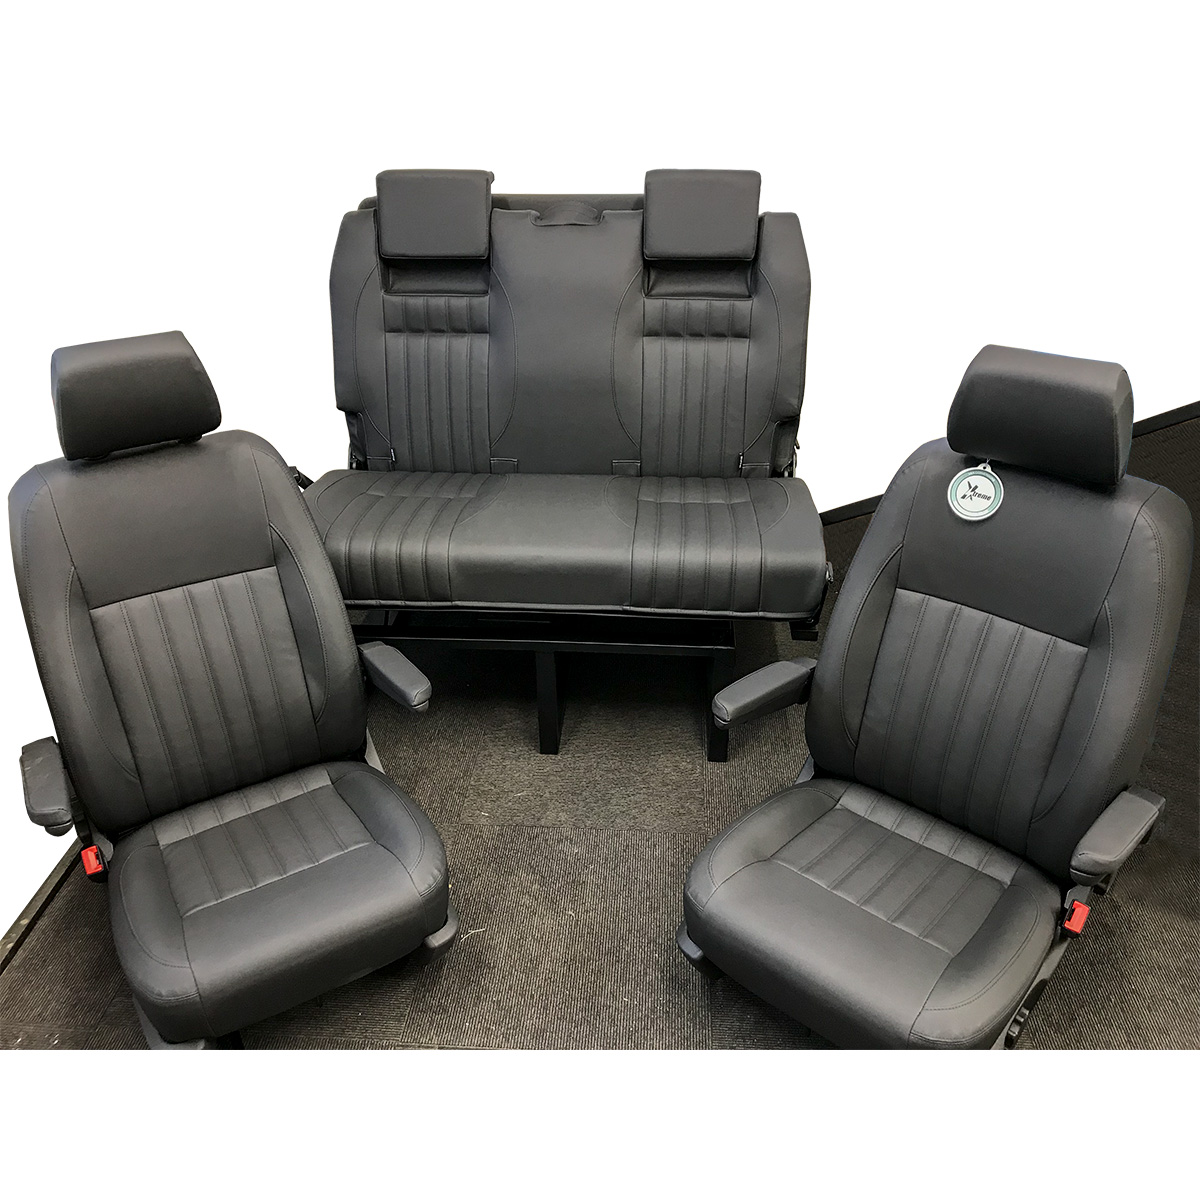 2 Single Front Seats with Arm and Head Rests with a 3/4 Rib Bed